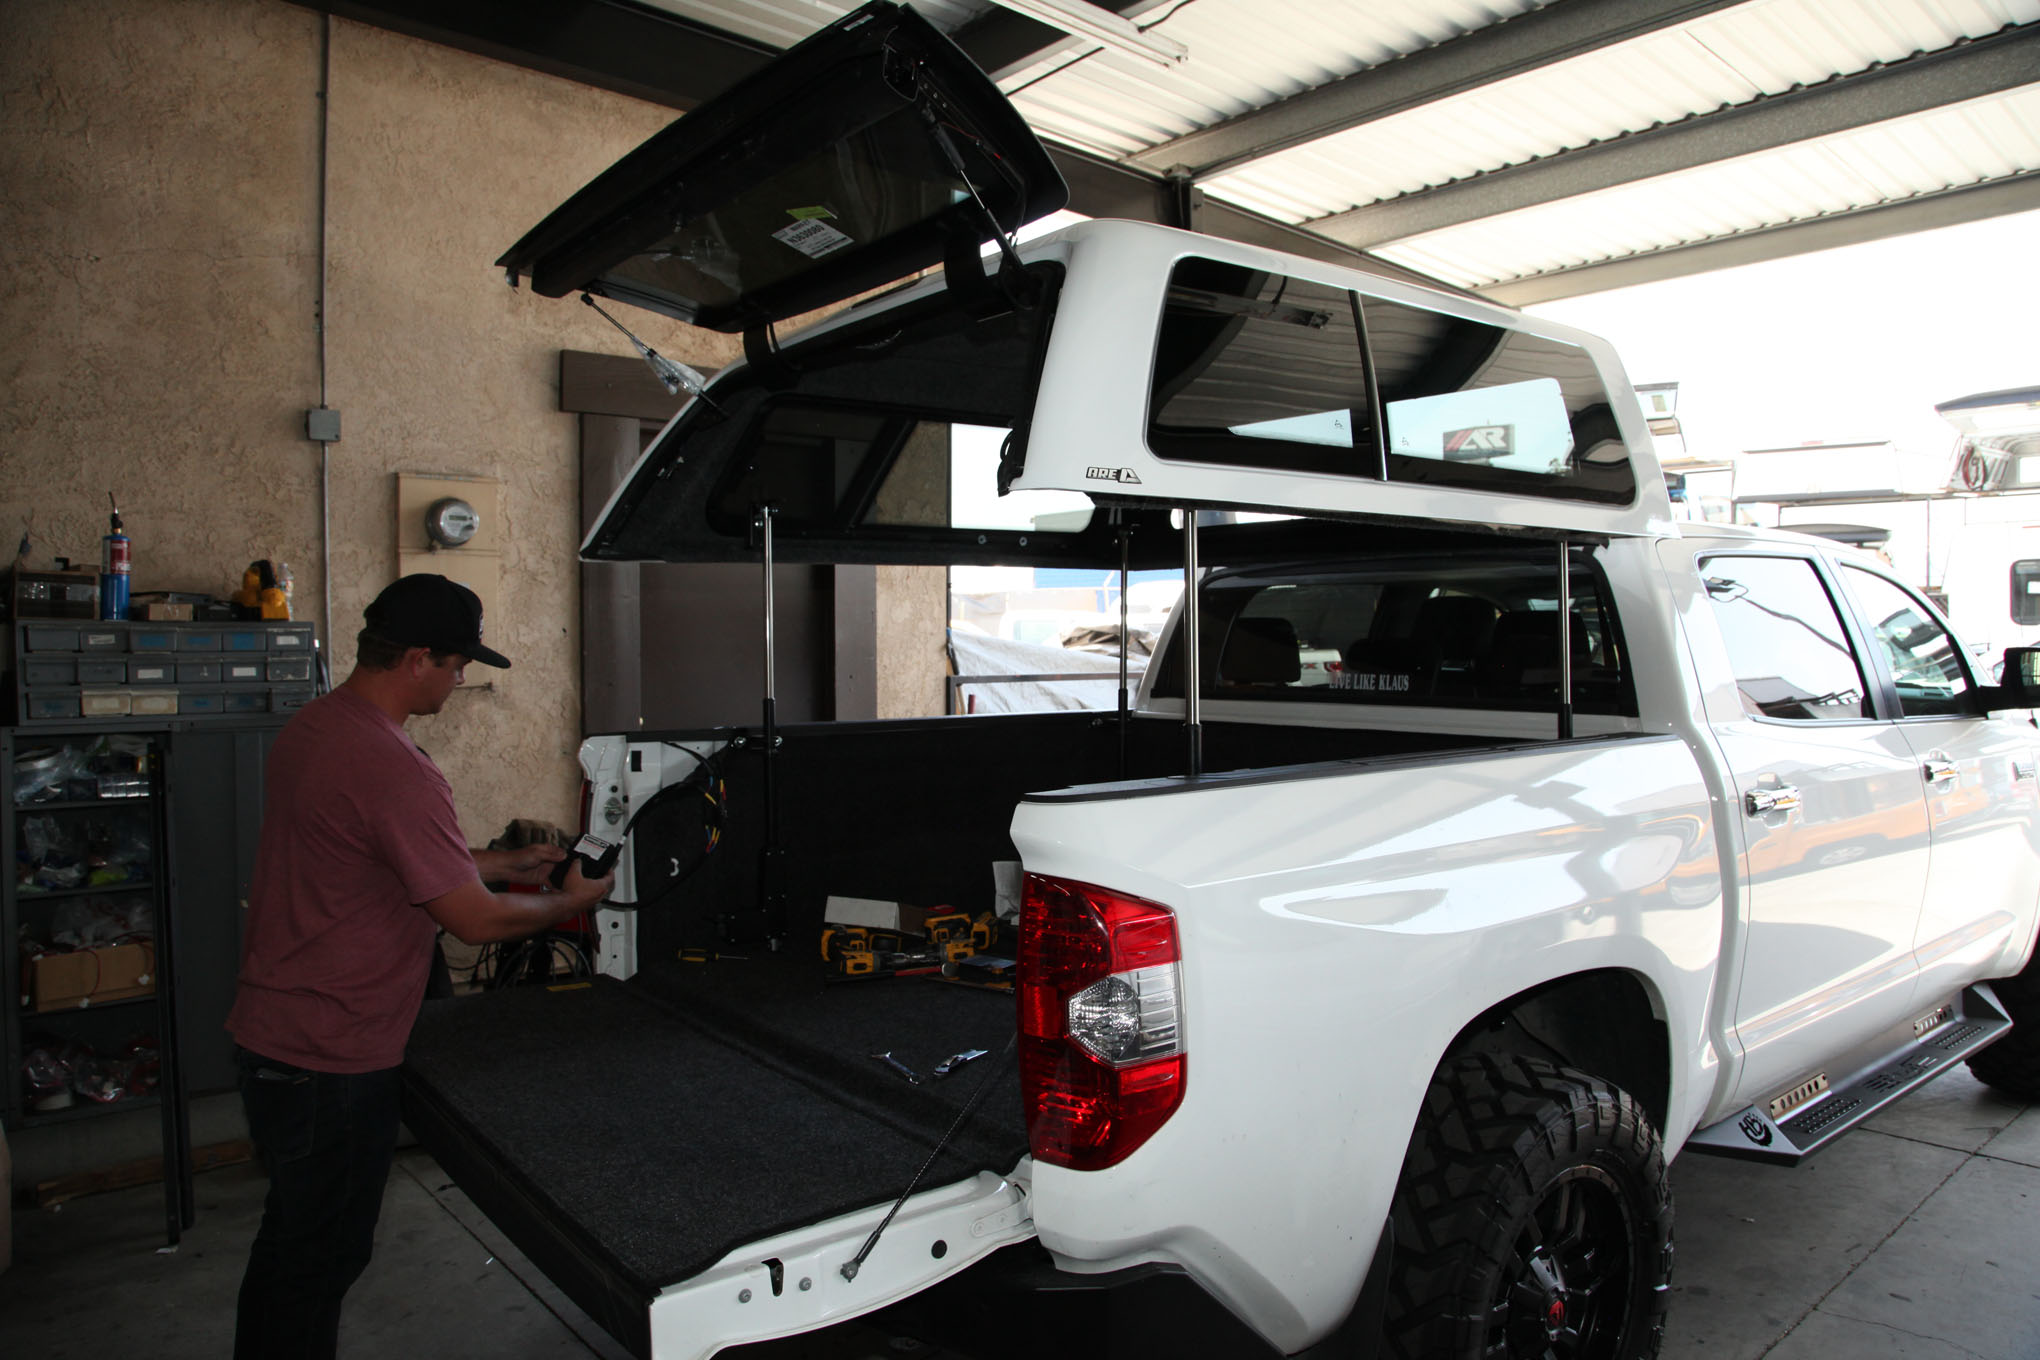 Adding An Are Camper Shell Bed Rug And Topper Ez Lift Bed Tent To Our 2014 Toyota